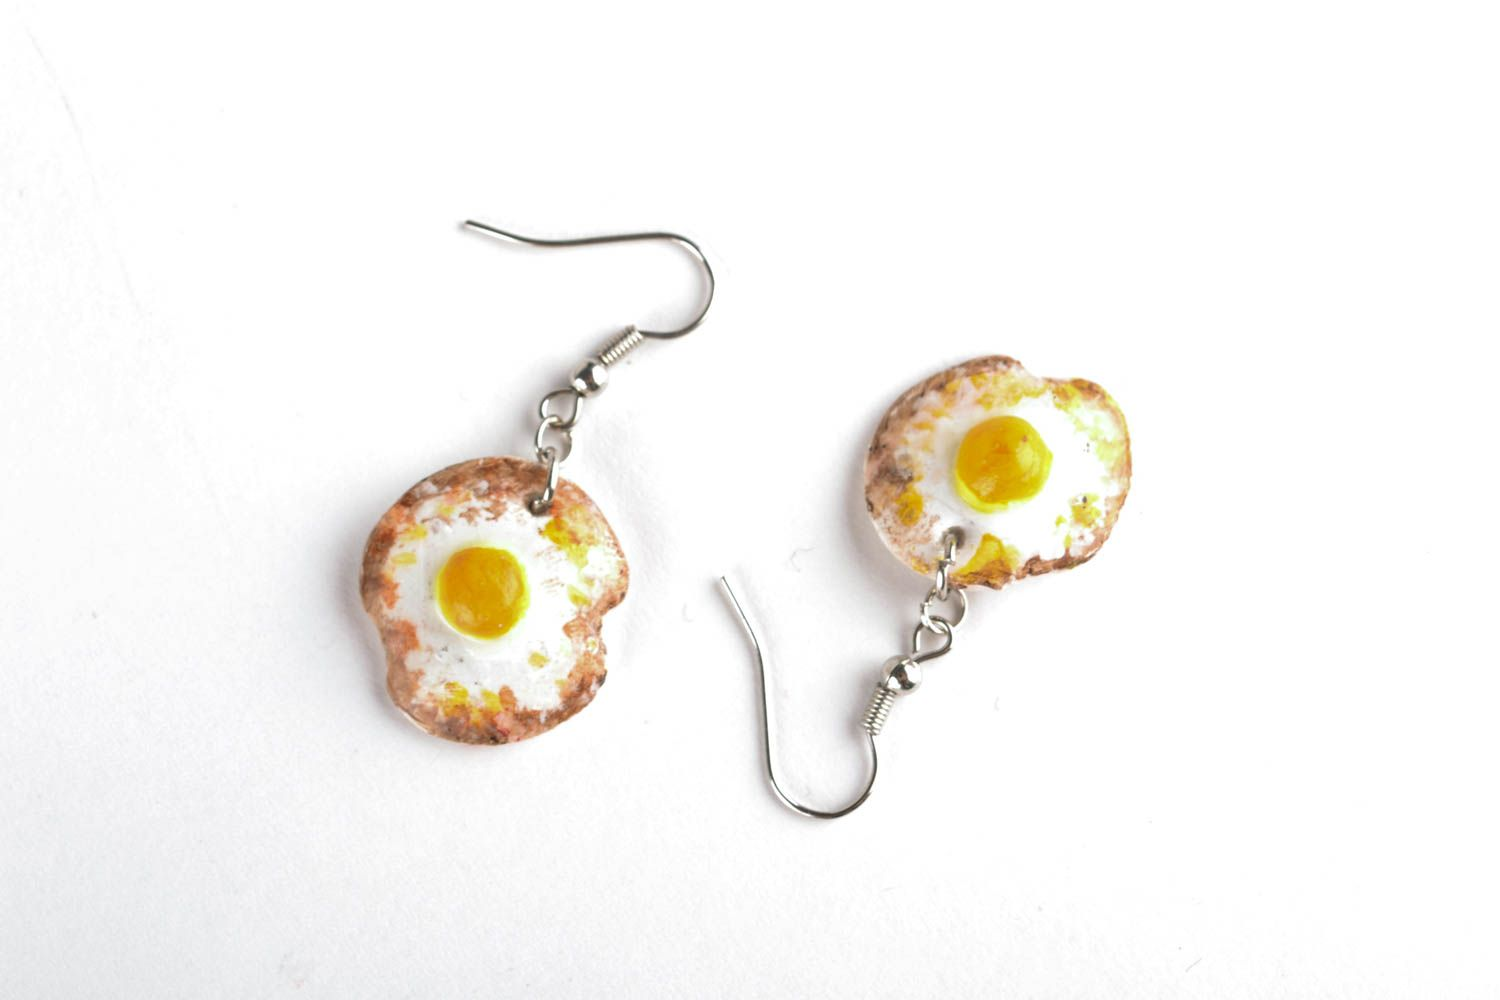 Polymer clay earrings in the shape of fried eggs photo 2